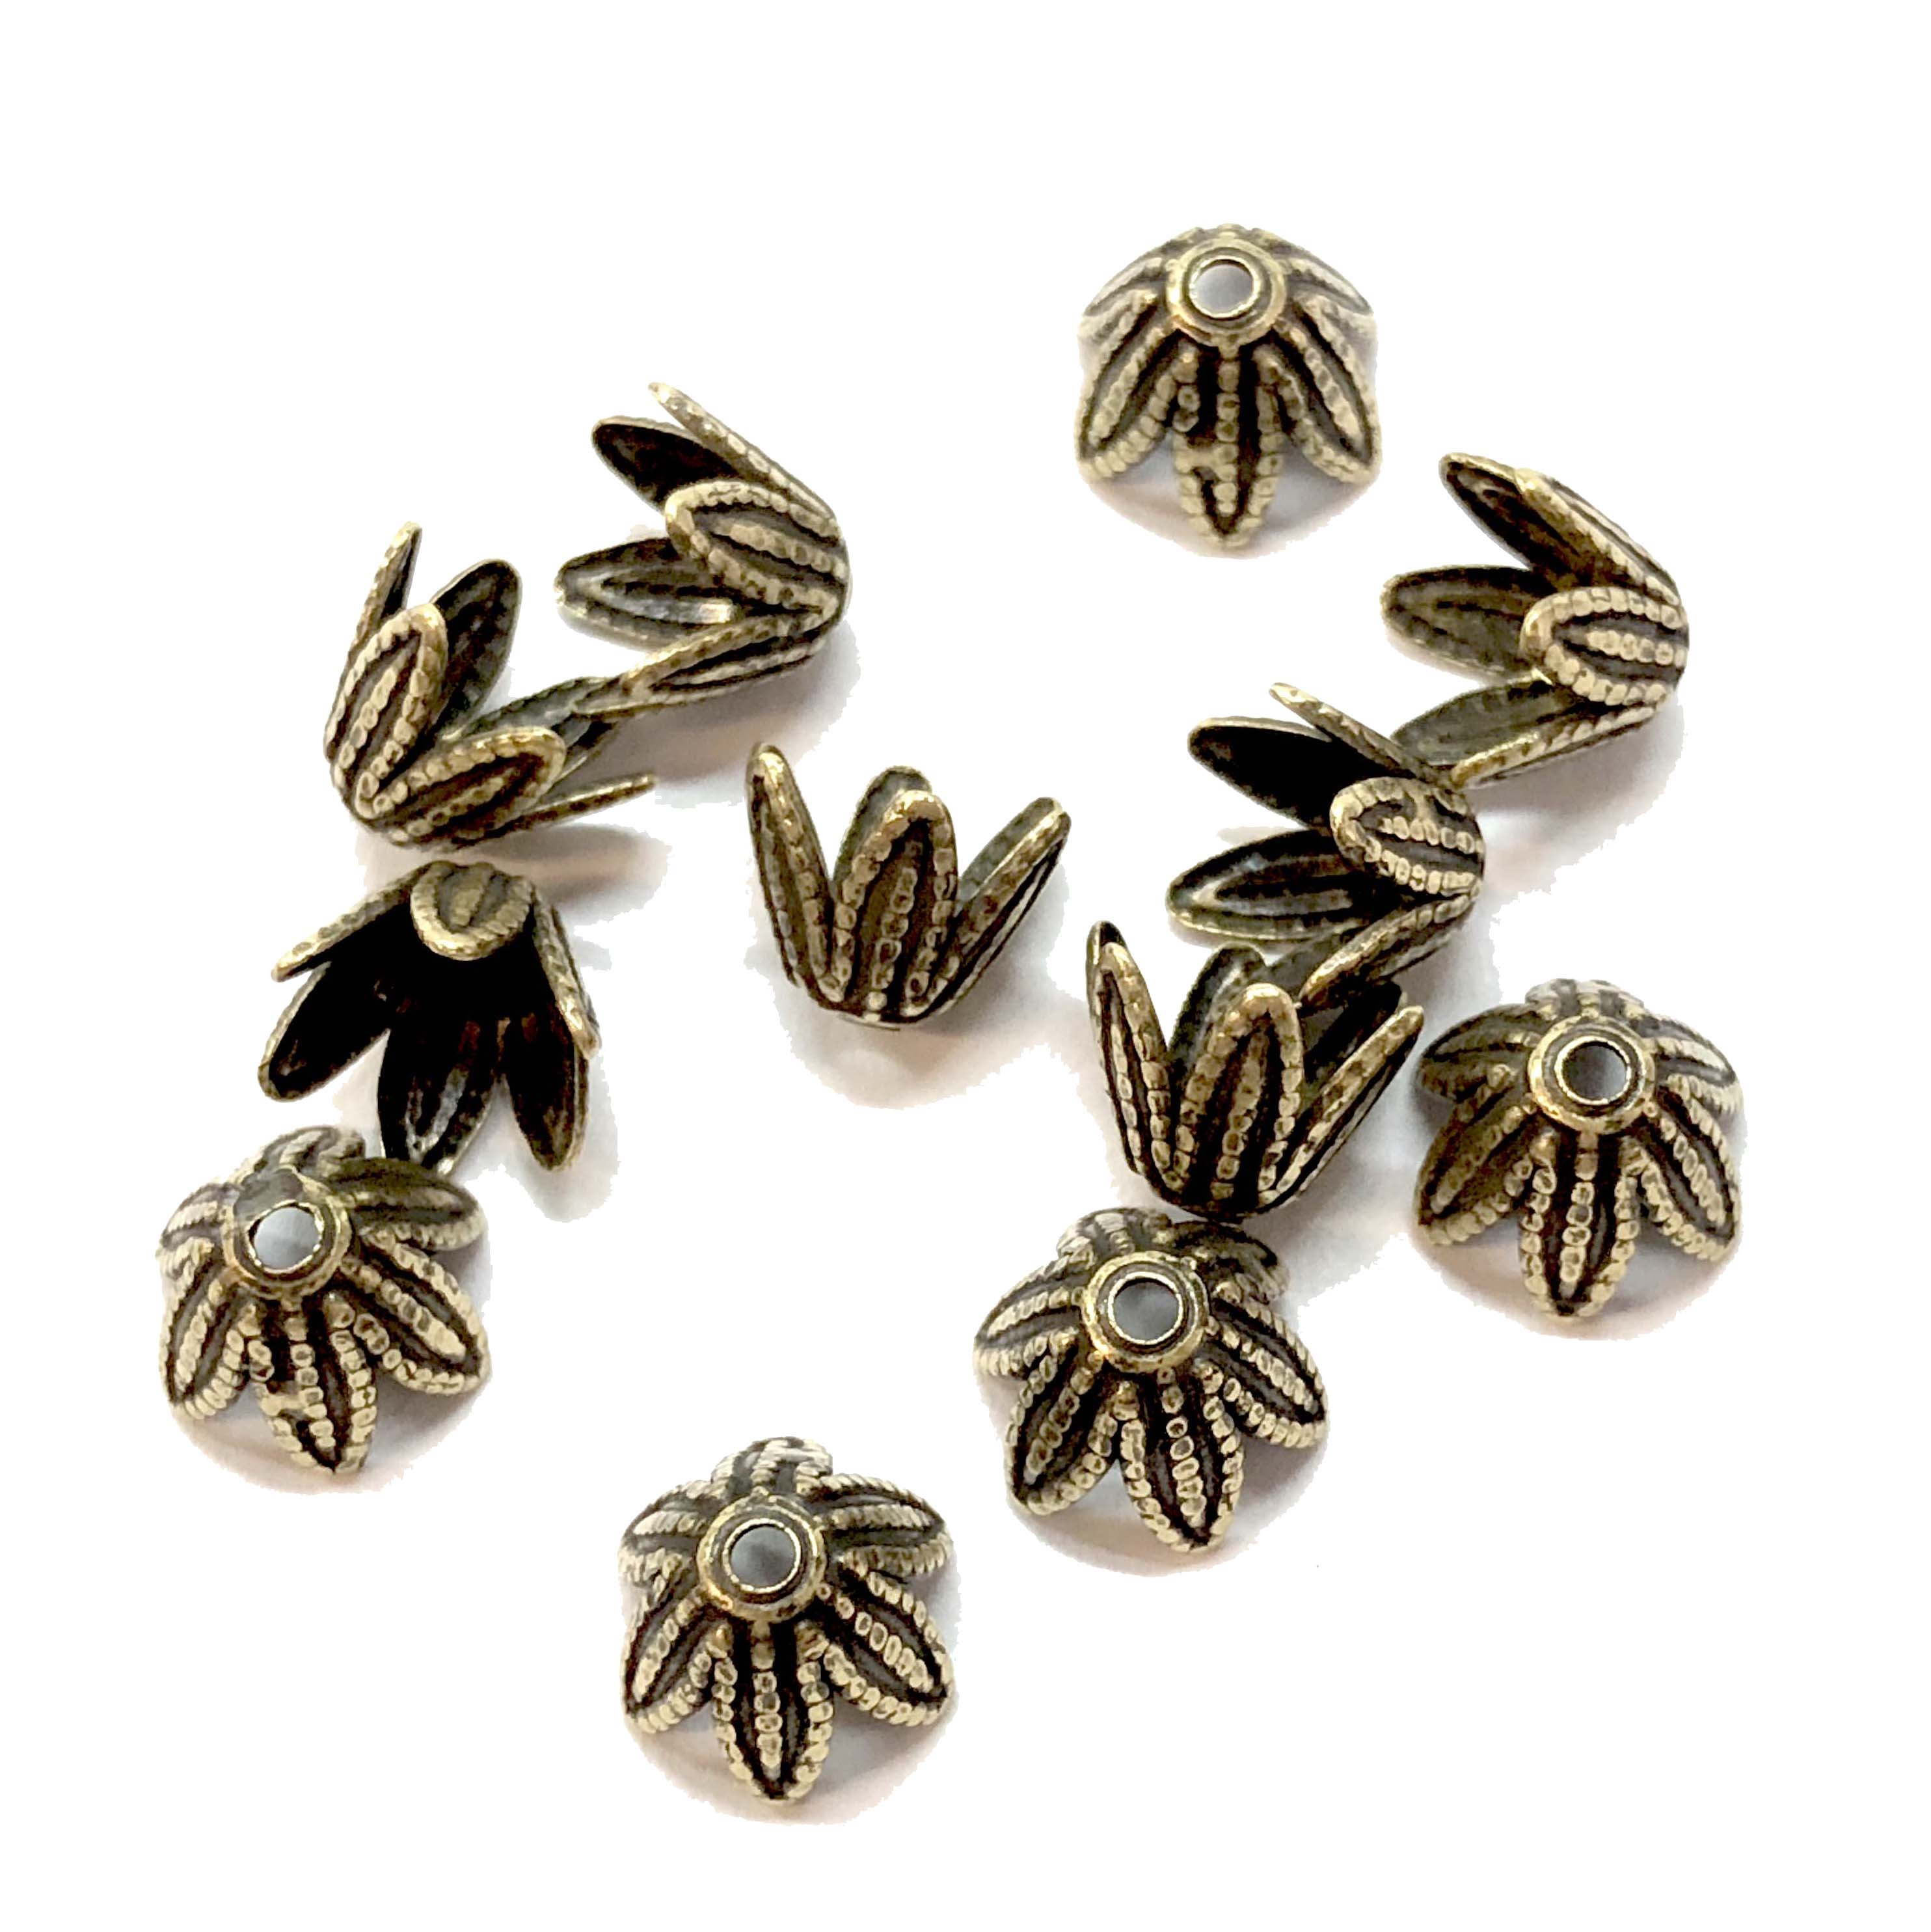 brass bead caps, flower caps, brass ox, 08336, brass caps, US made, nickel free jewelry supplies, beading supplies, vintage jewelry supplies, brass jewelry parts, antique brass, jewelry findings, brass findings